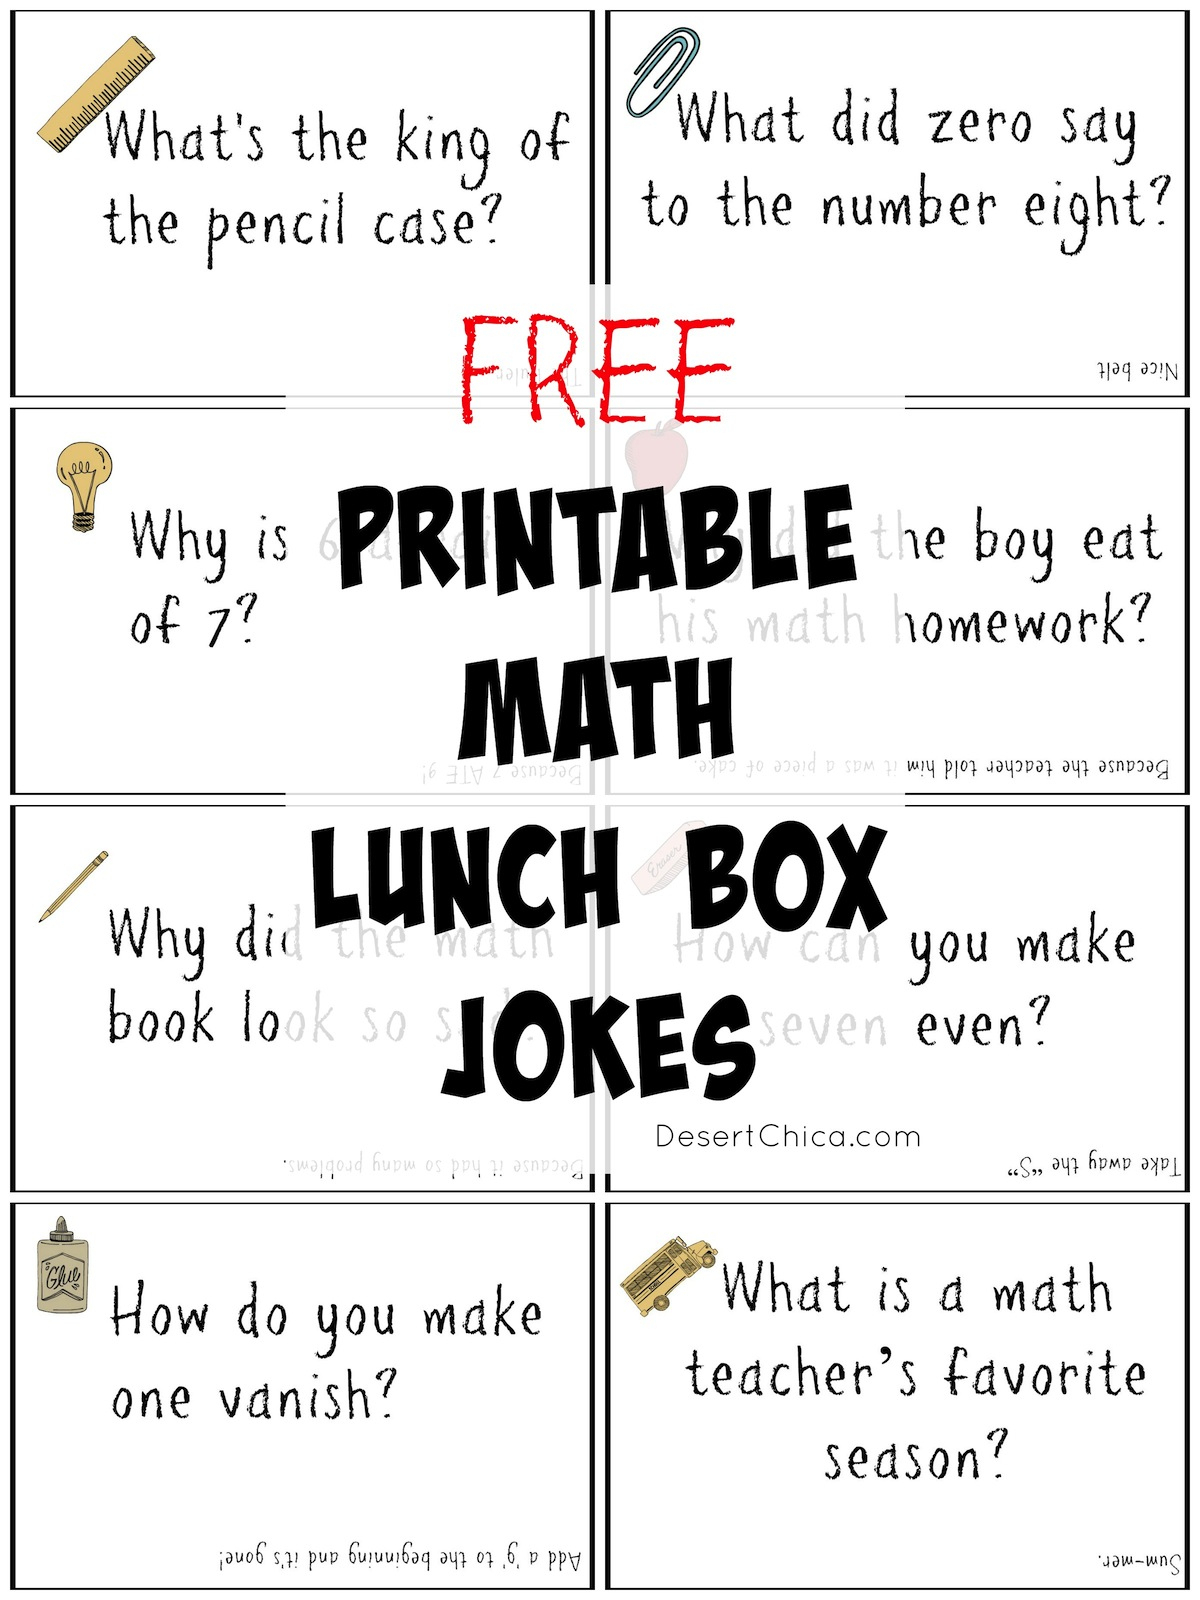 Math Lunch Box Notes | Desert Chica - Free Printable Jokes For Adults